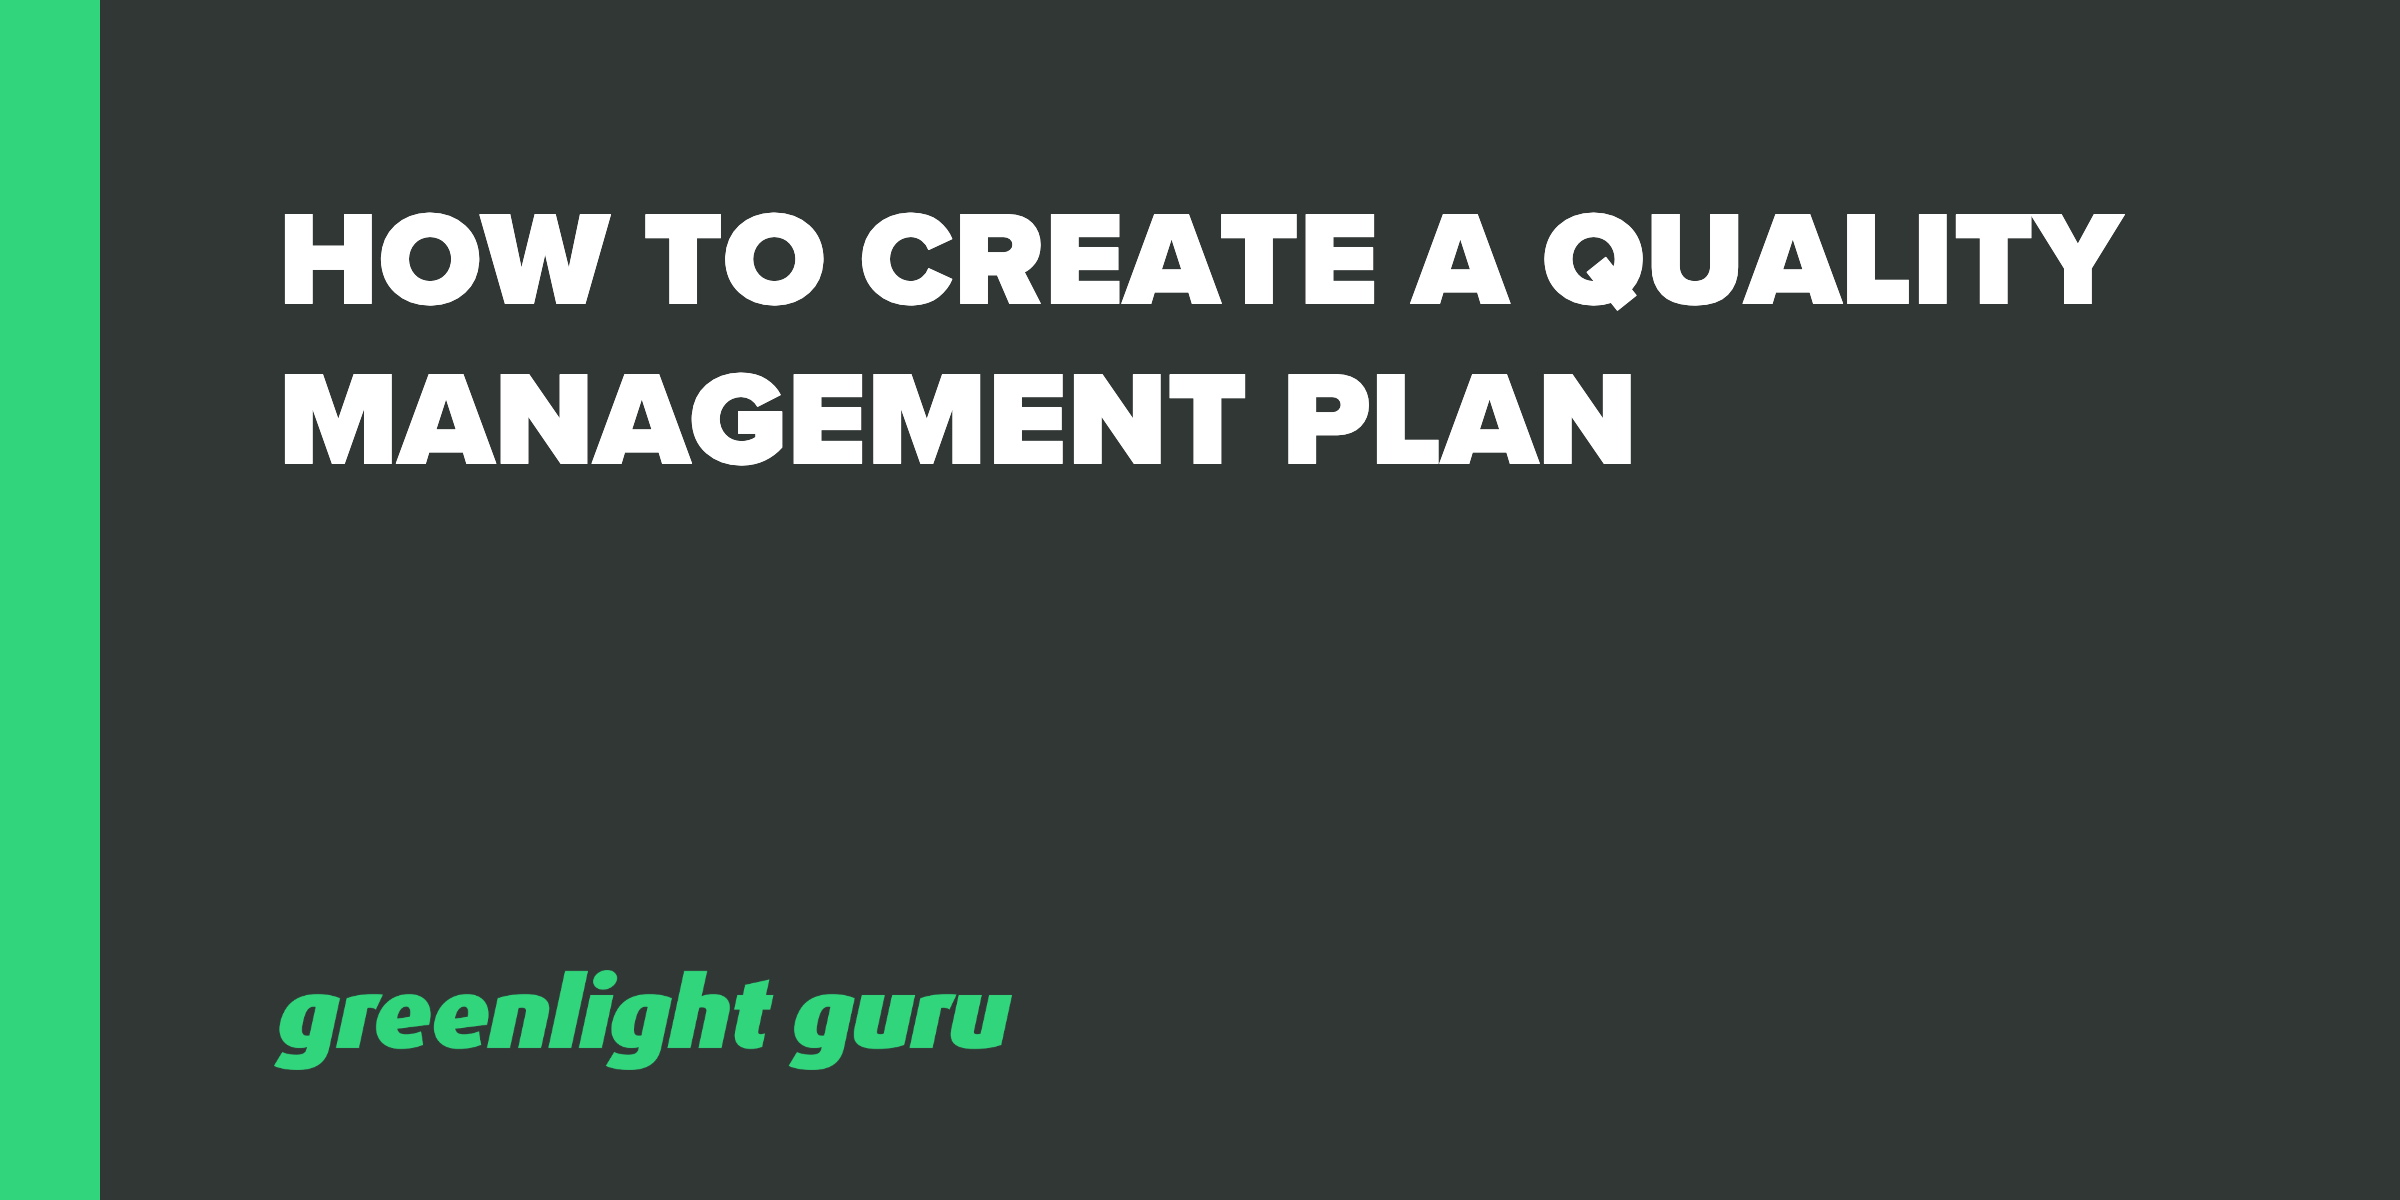 How to Create a Quality Management Plan